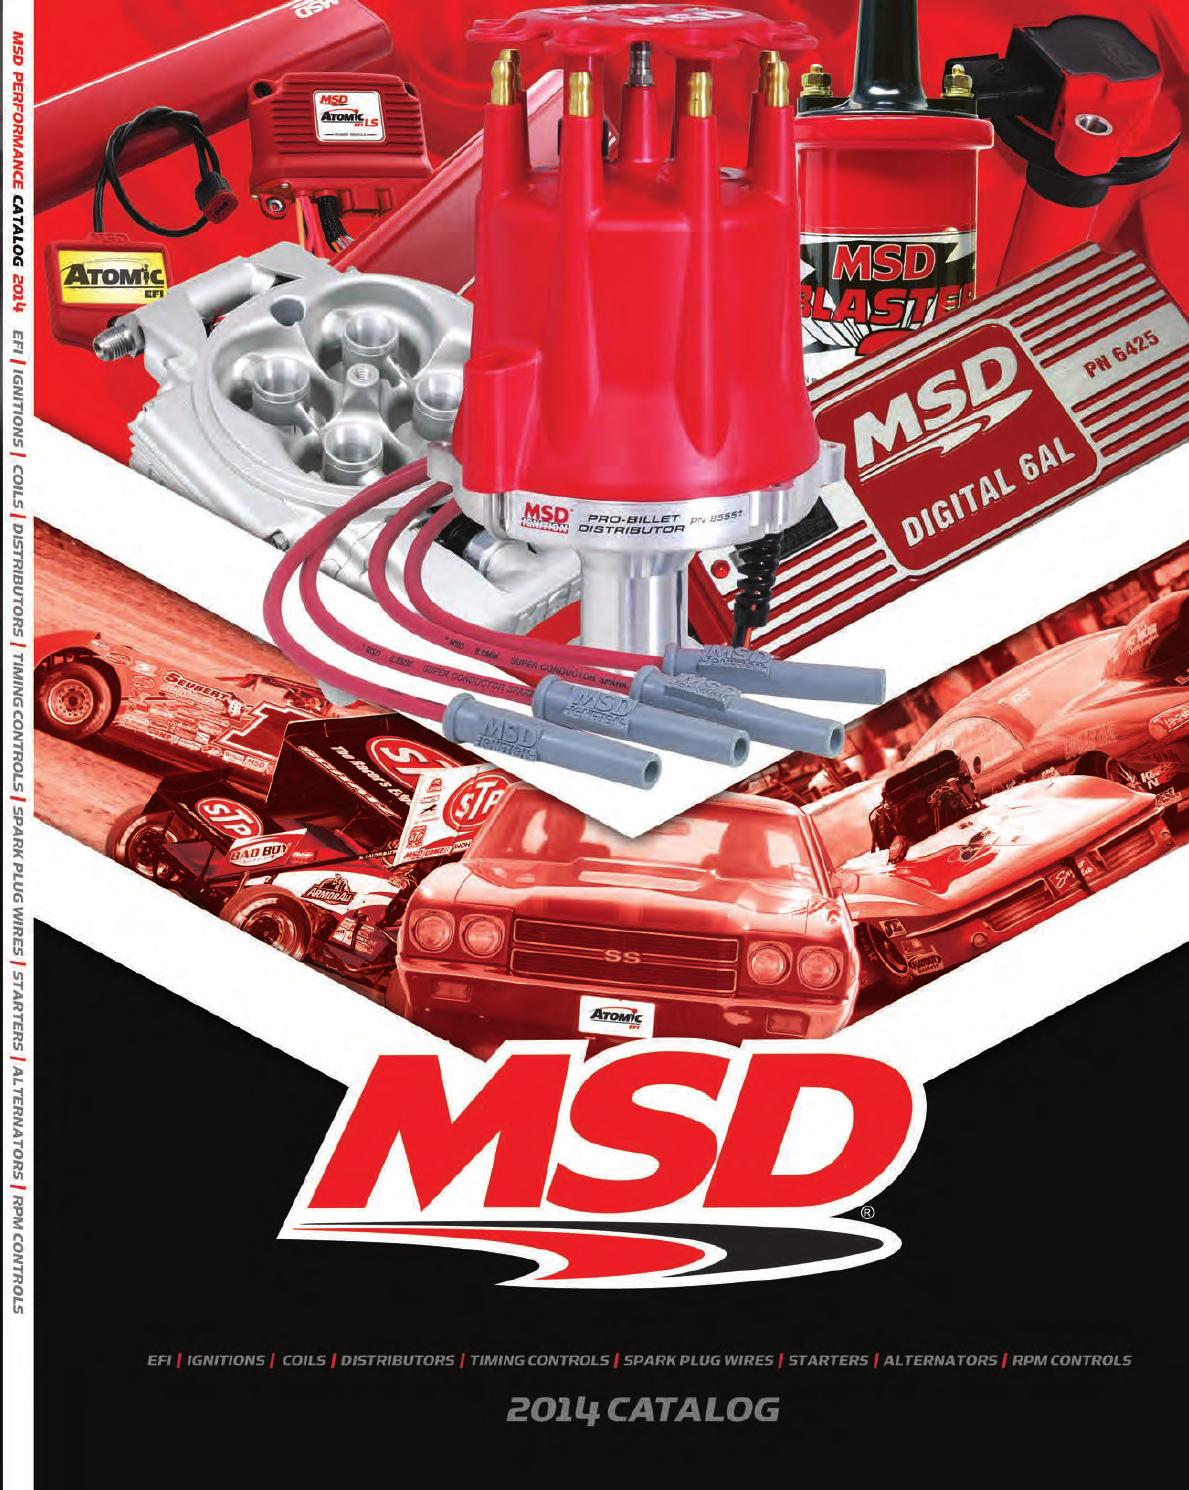 2014 Msd Catalog By Tmeyer Inc Issuu Distributor 8360 Wiring Diagram